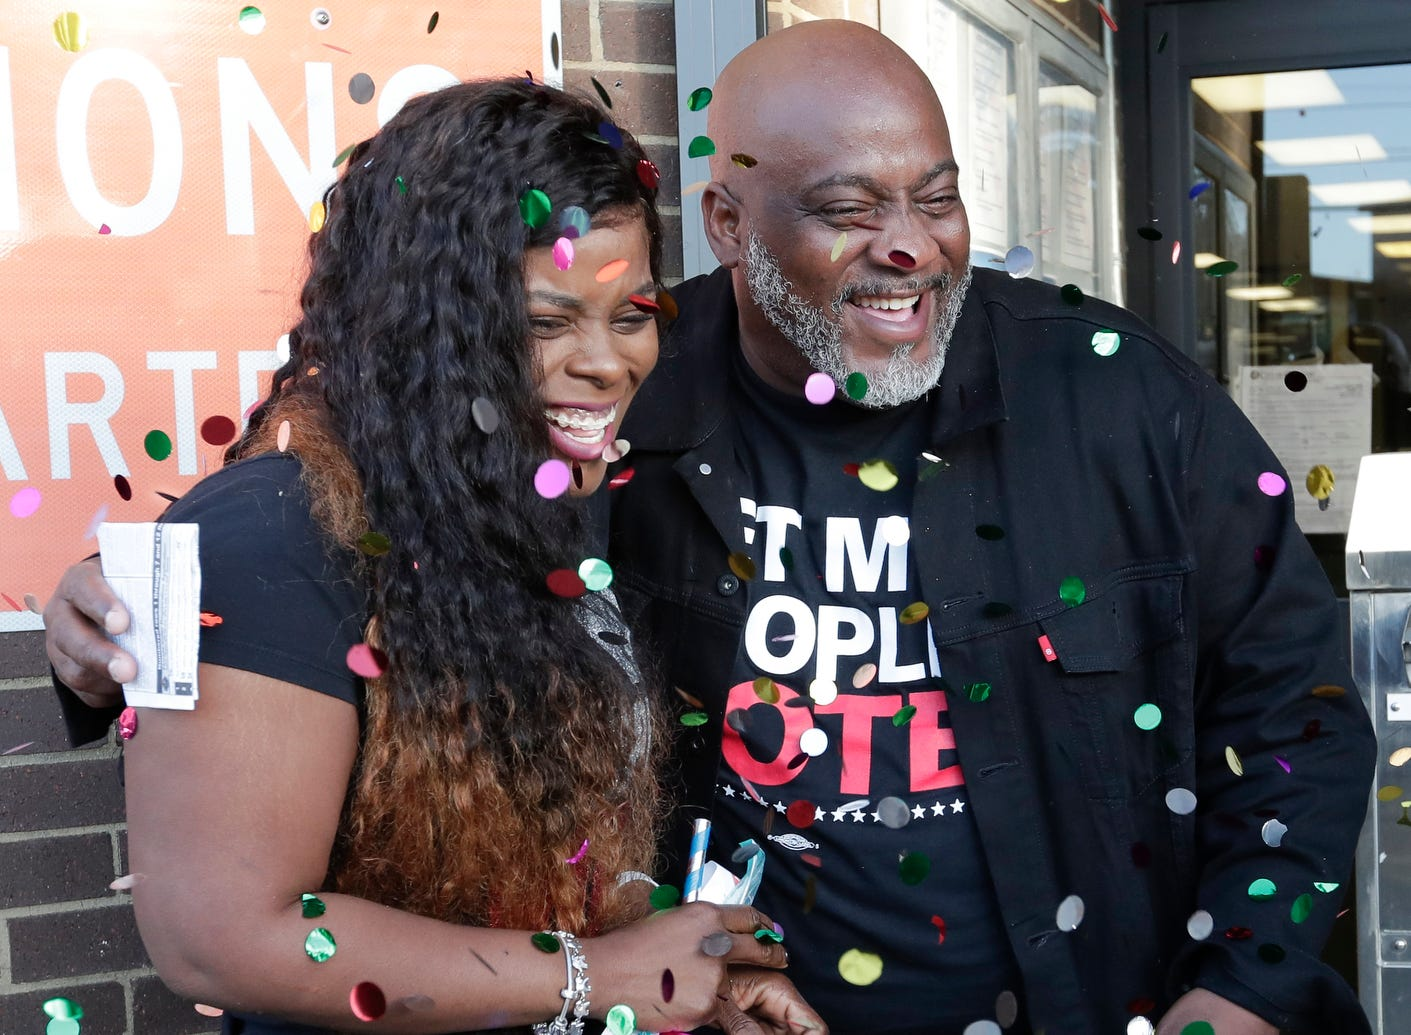 Former felon Desmond Meade and president of the Florida Rights Restoration Coalition, right, celebrates with his wife Sheena as family members covered them with confetti after he registered to vote at the Supervisor of Elections office on Jan. 8, 2019, in Orlando, Fla.